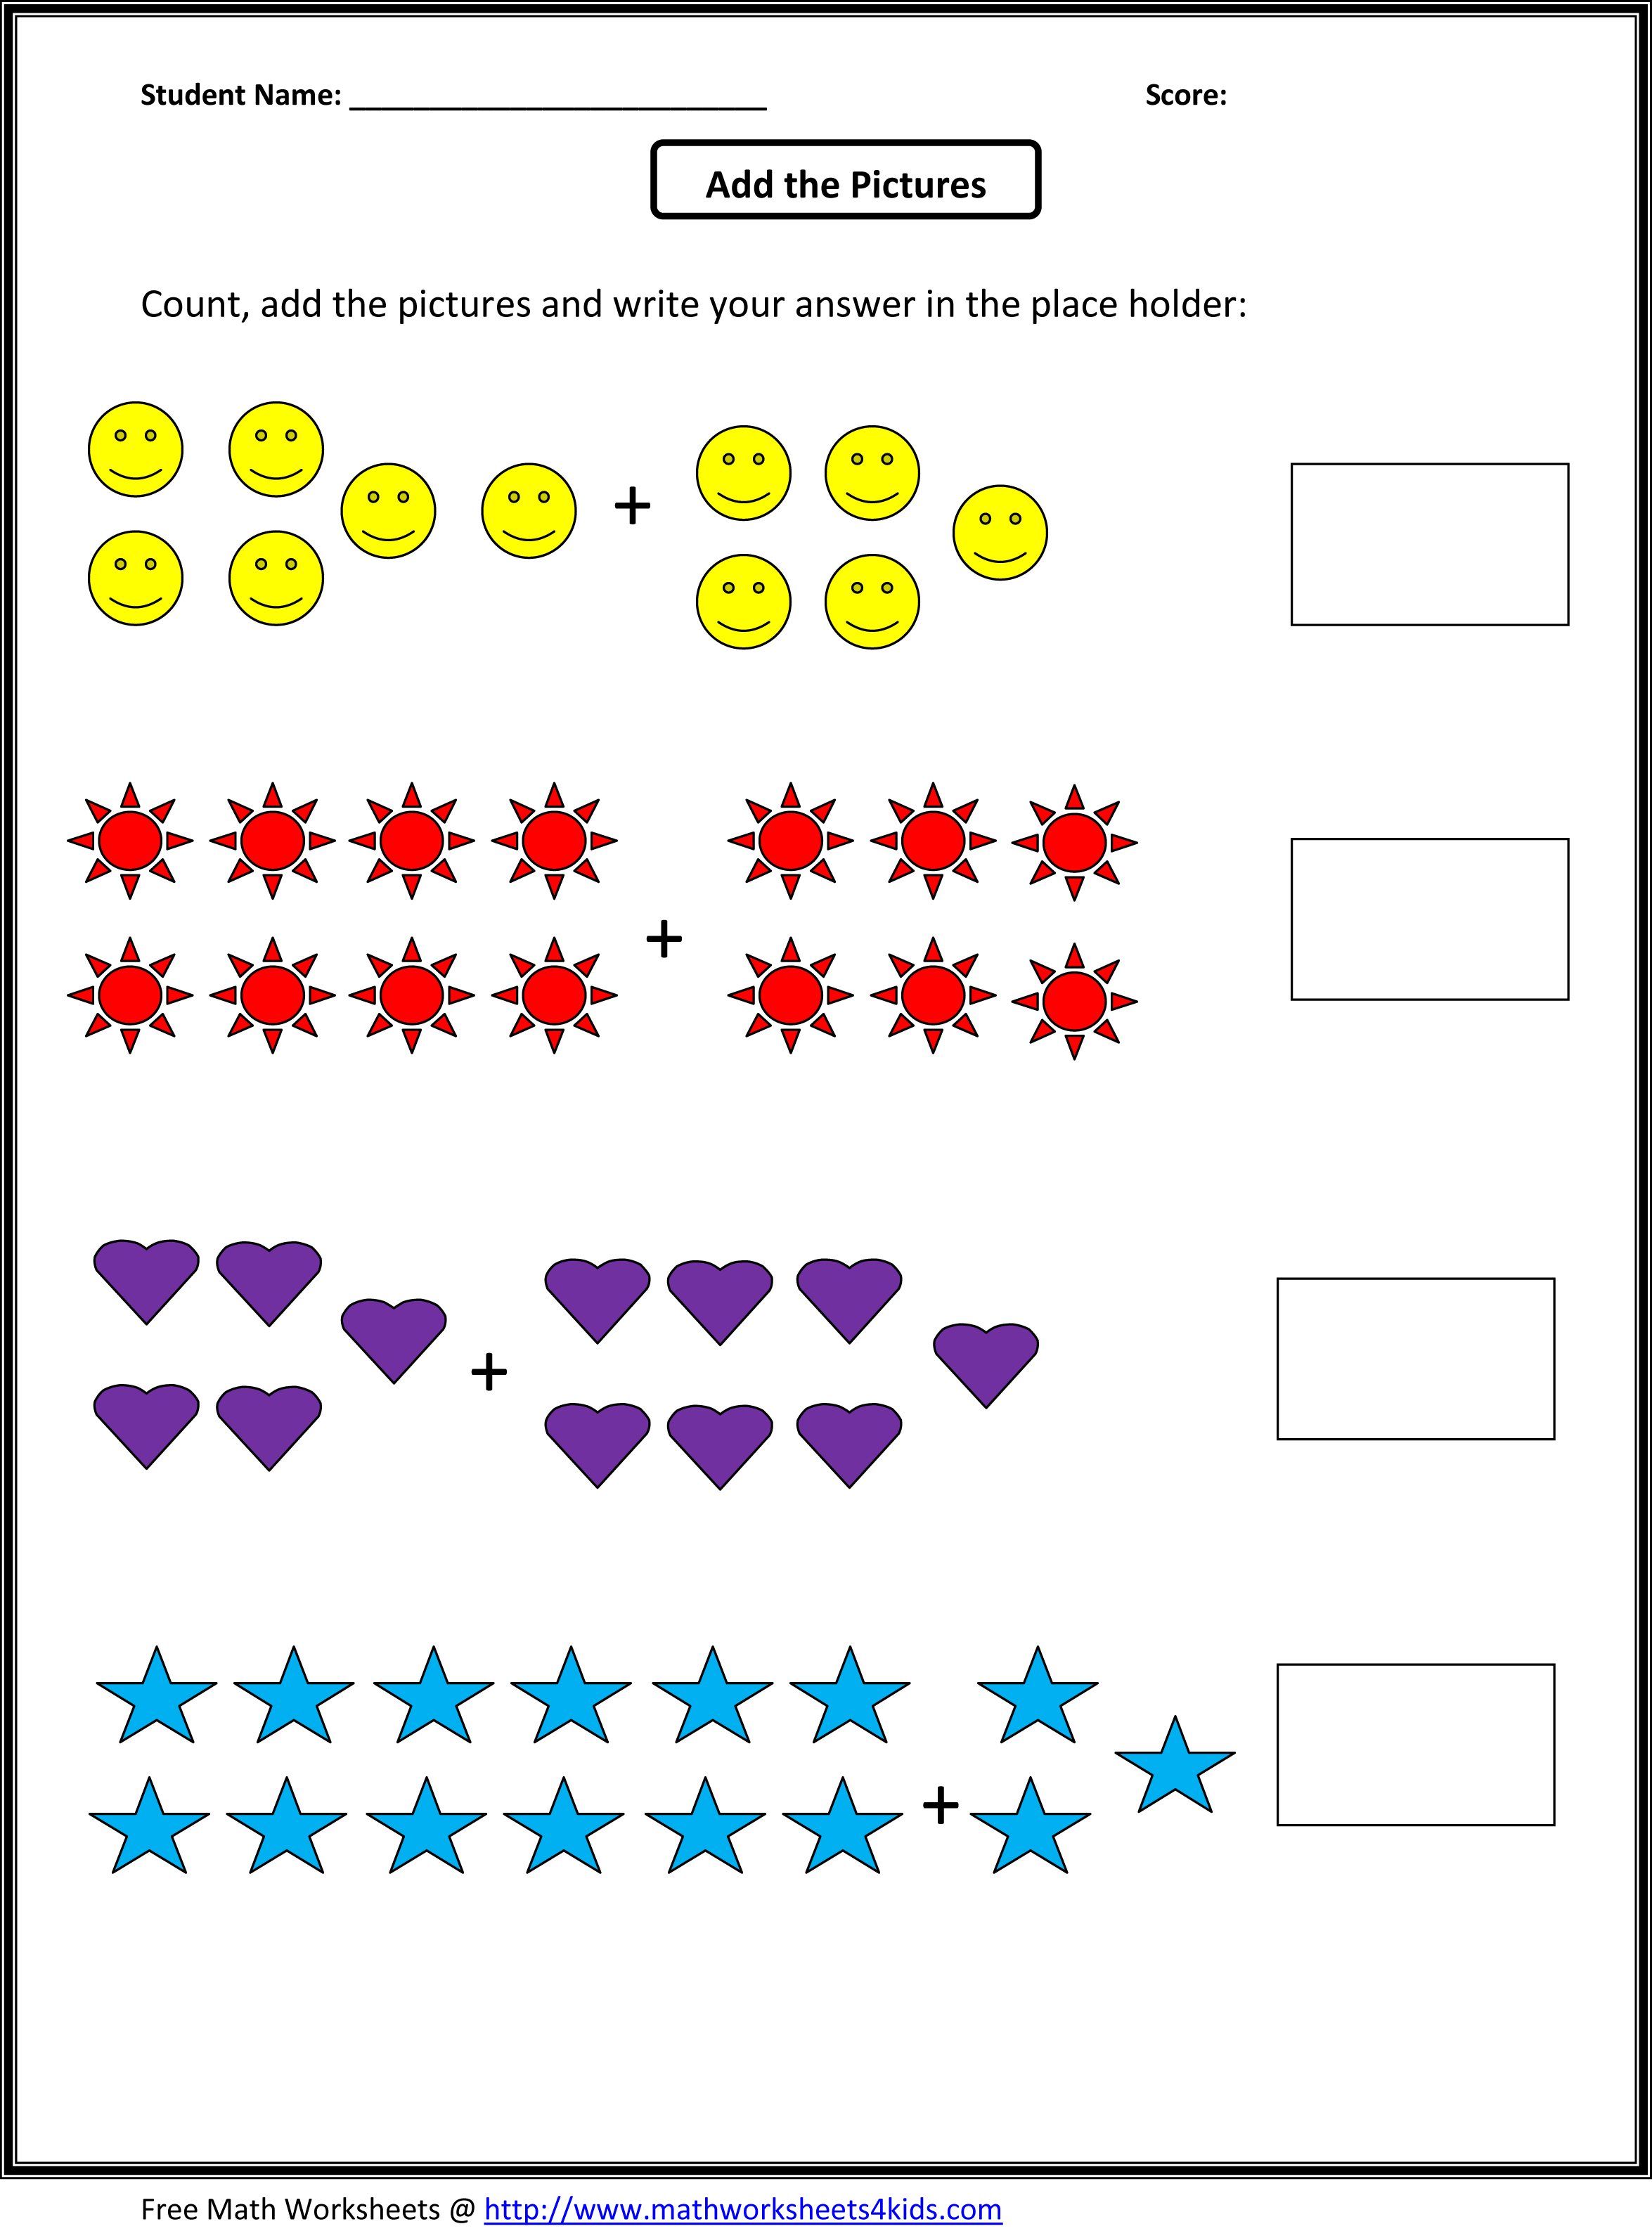 Proatmealus  Fascinating Grade  Maths Worksheet  Reocurent With Goodlooking Math Worksheets For St Grade Free  Reocurent With Extraordinary  Earned Income Credit Worksheet Also Vocabulary Building Worksheets High School In Addition Carbon Cycle Diagram Worksheet And Worksheet Motion Graphs As Well As Statue Of Liberty Worksheets Additionally Self Care Worksheet From Reocurentcom With Proatmealus  Goodlooking Grade  Maths Worksheet  Reocurent With Extraordinary Math Worksheets For St Grade Free  Reocurent And Fascinating  Earned Income Credit Worksheet Also Vocabulary Building Worksheets High School In Addition Carbon Cycle Diagram Worksheet From Reocurentcom